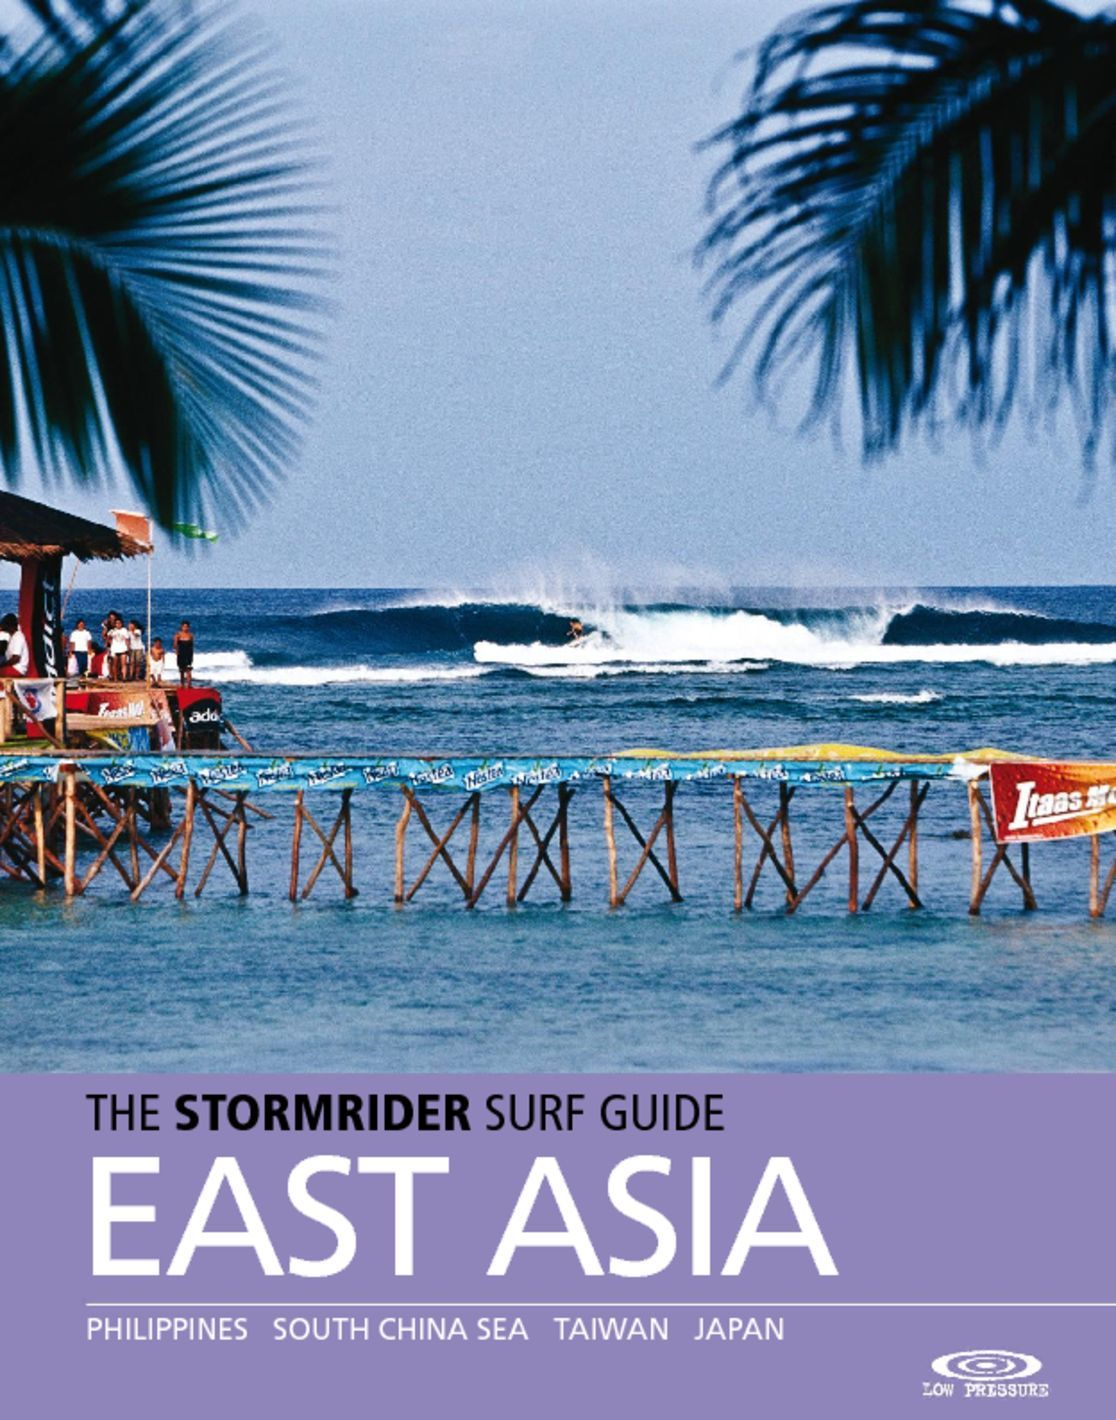 The Stormrider Surf Guide East Asia Digital